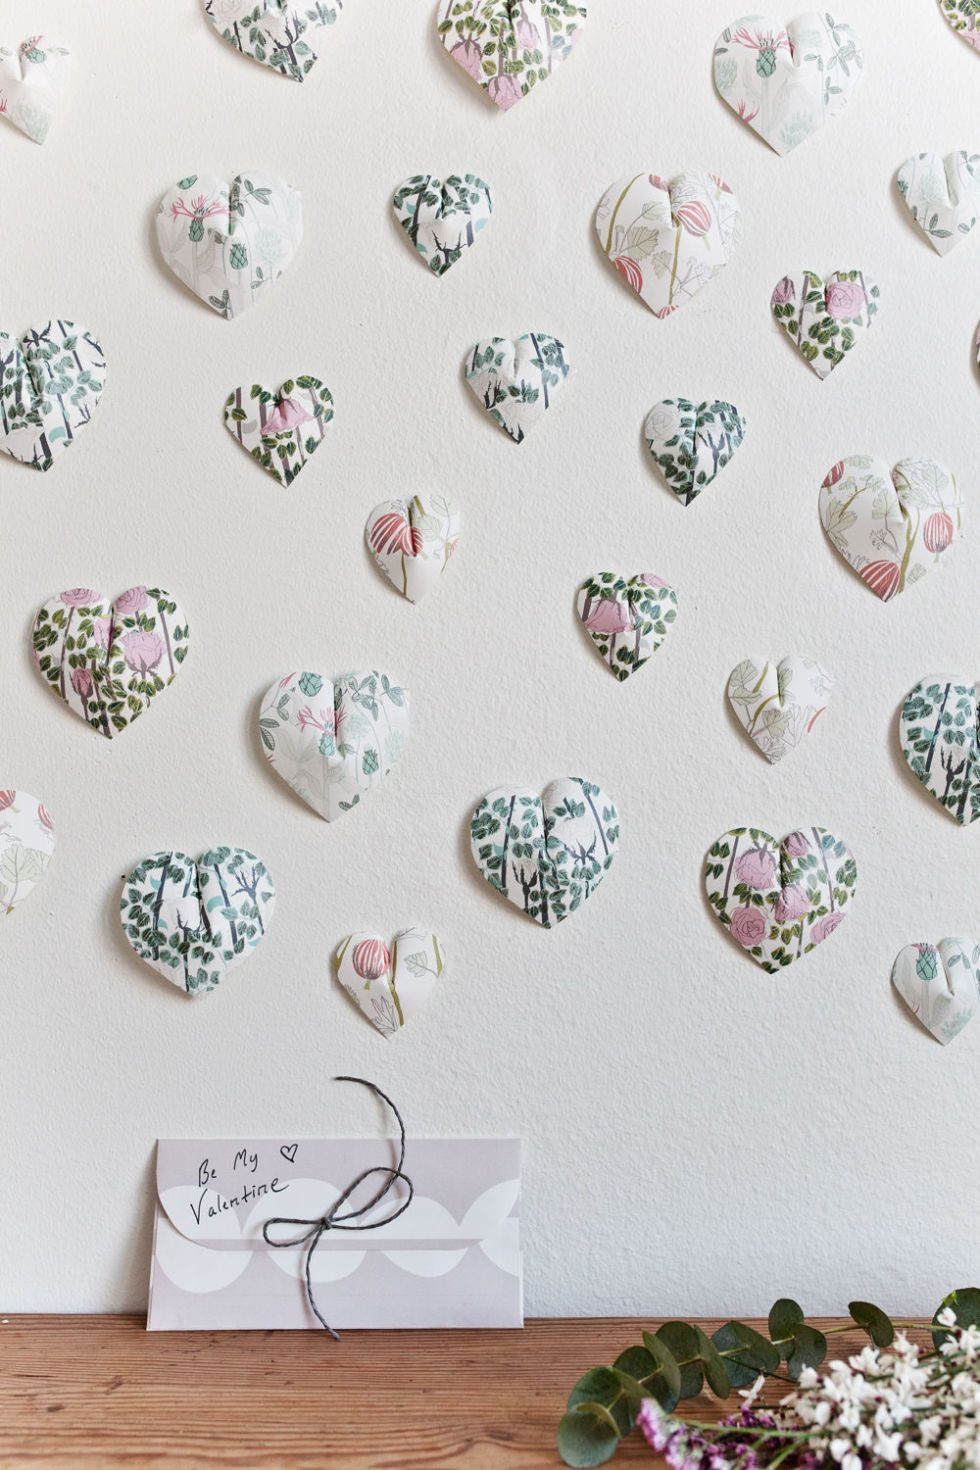 Create This Pretty Paper Heart Wall Hanging In 6 Easy Steps